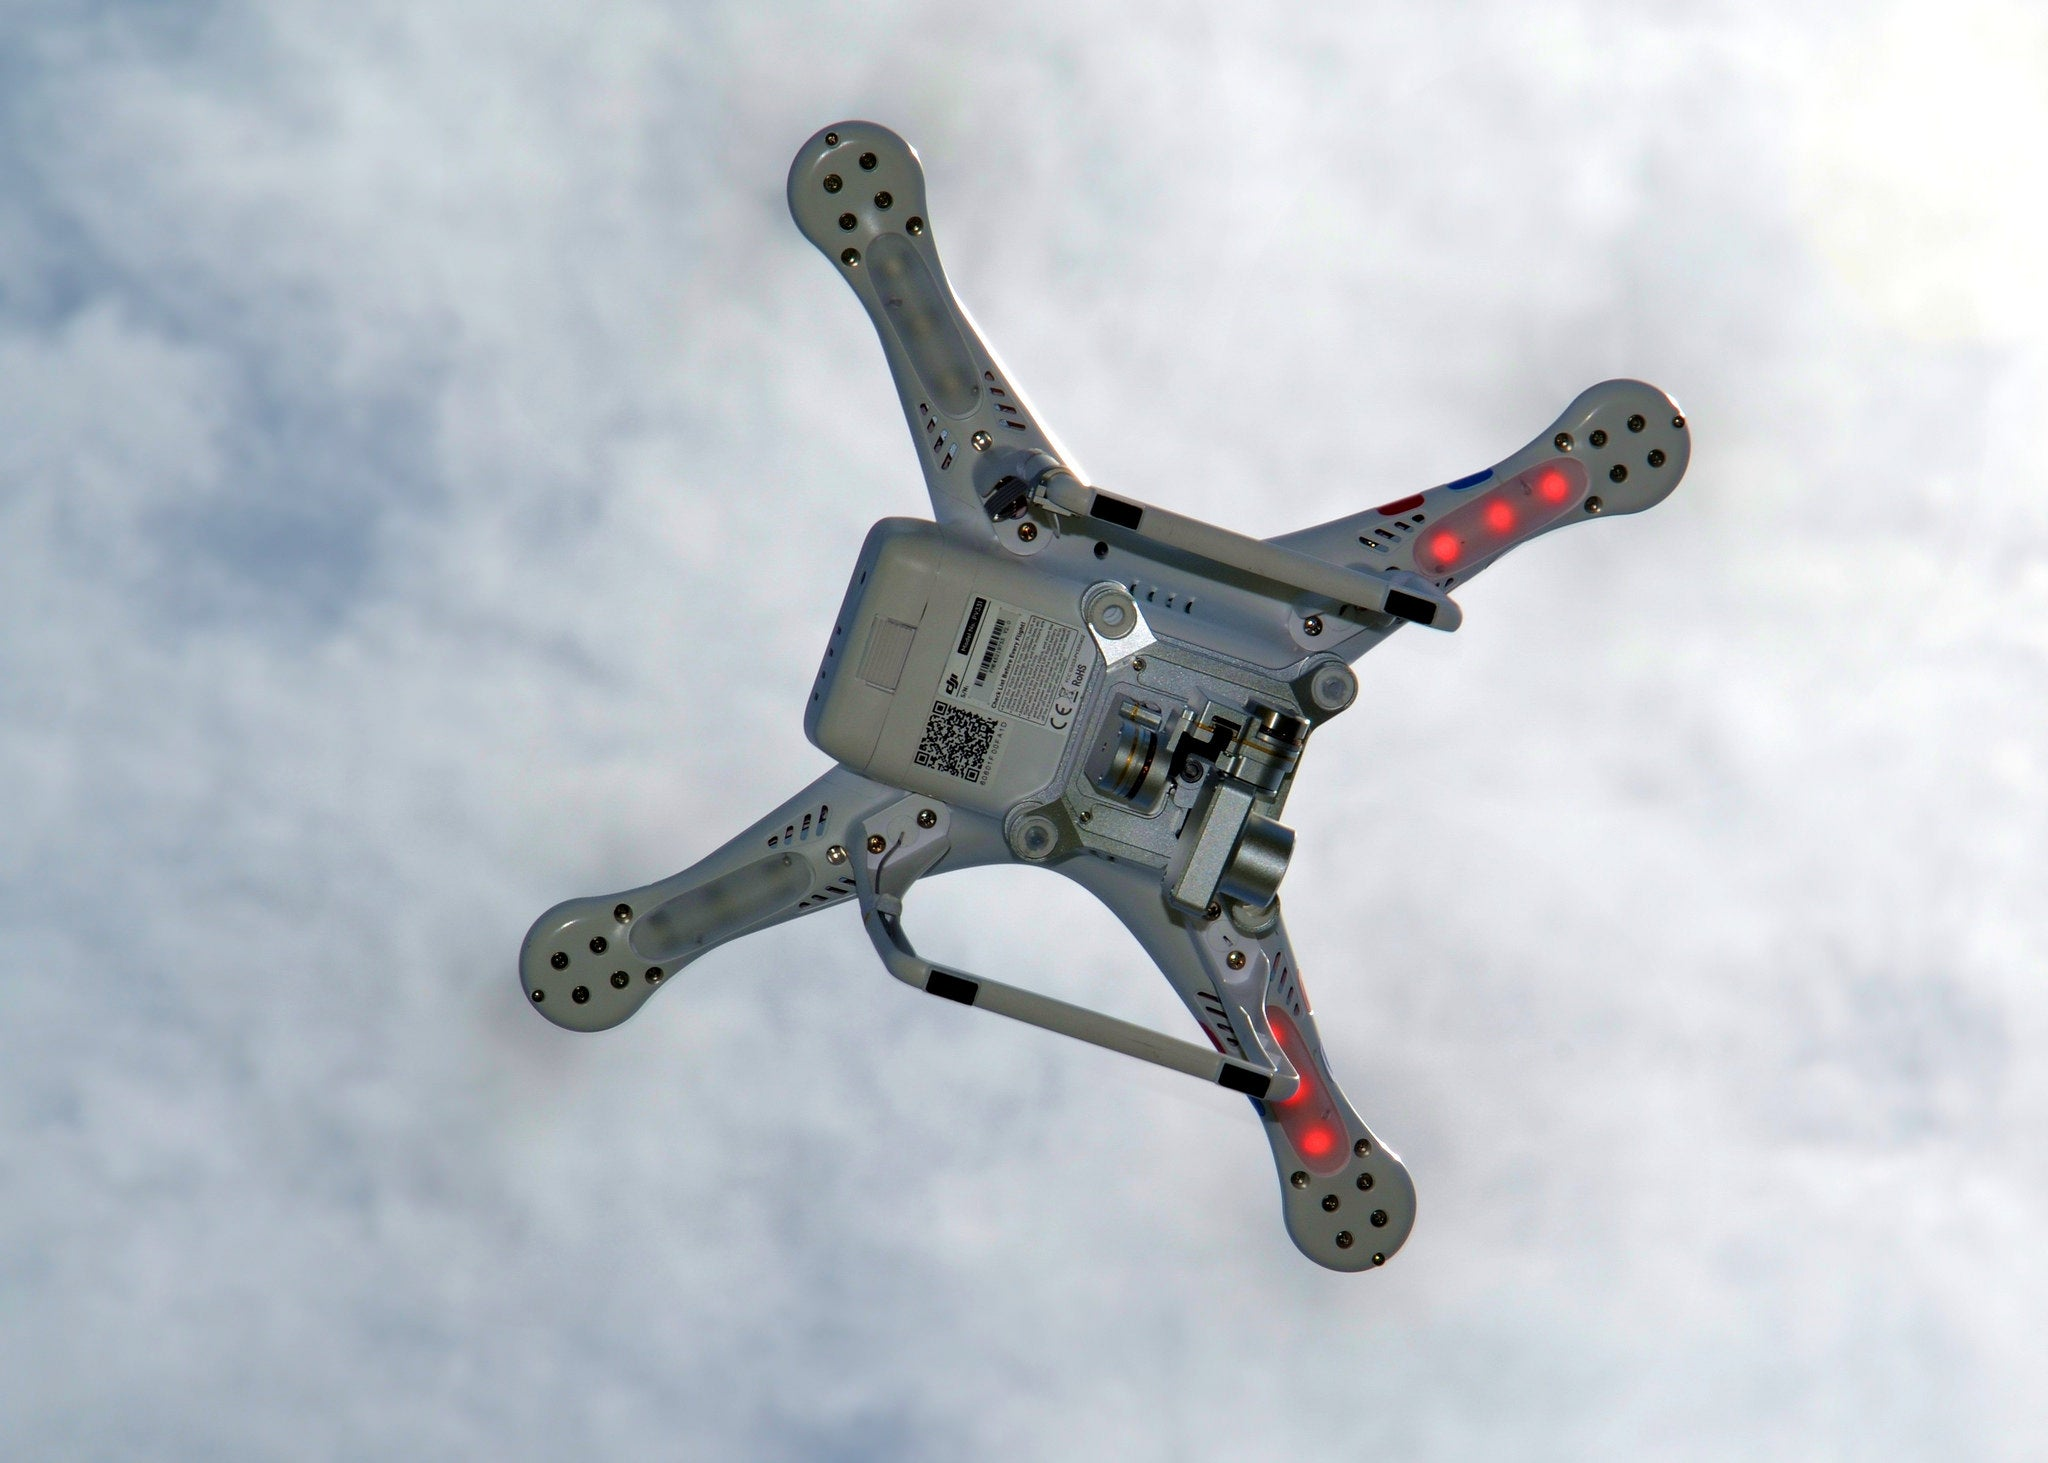 Marketing Drones Scanned Los Angeles For Cellphone Location Data